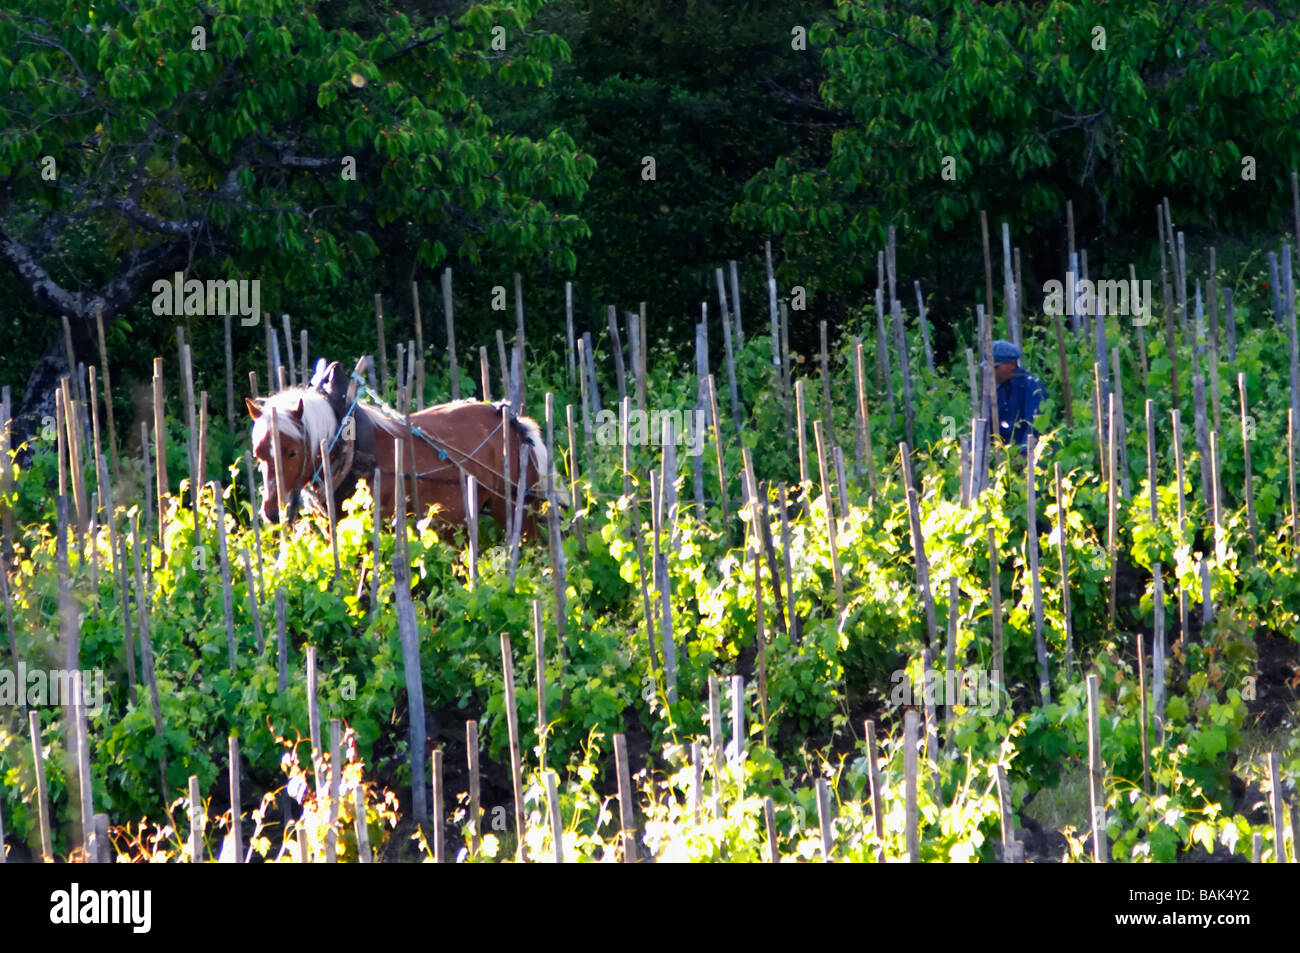 ploughing-the-vineyard-with-a-horse-domaine-m-sorrel-hermitage-rhone-BAK4Y2.jpg